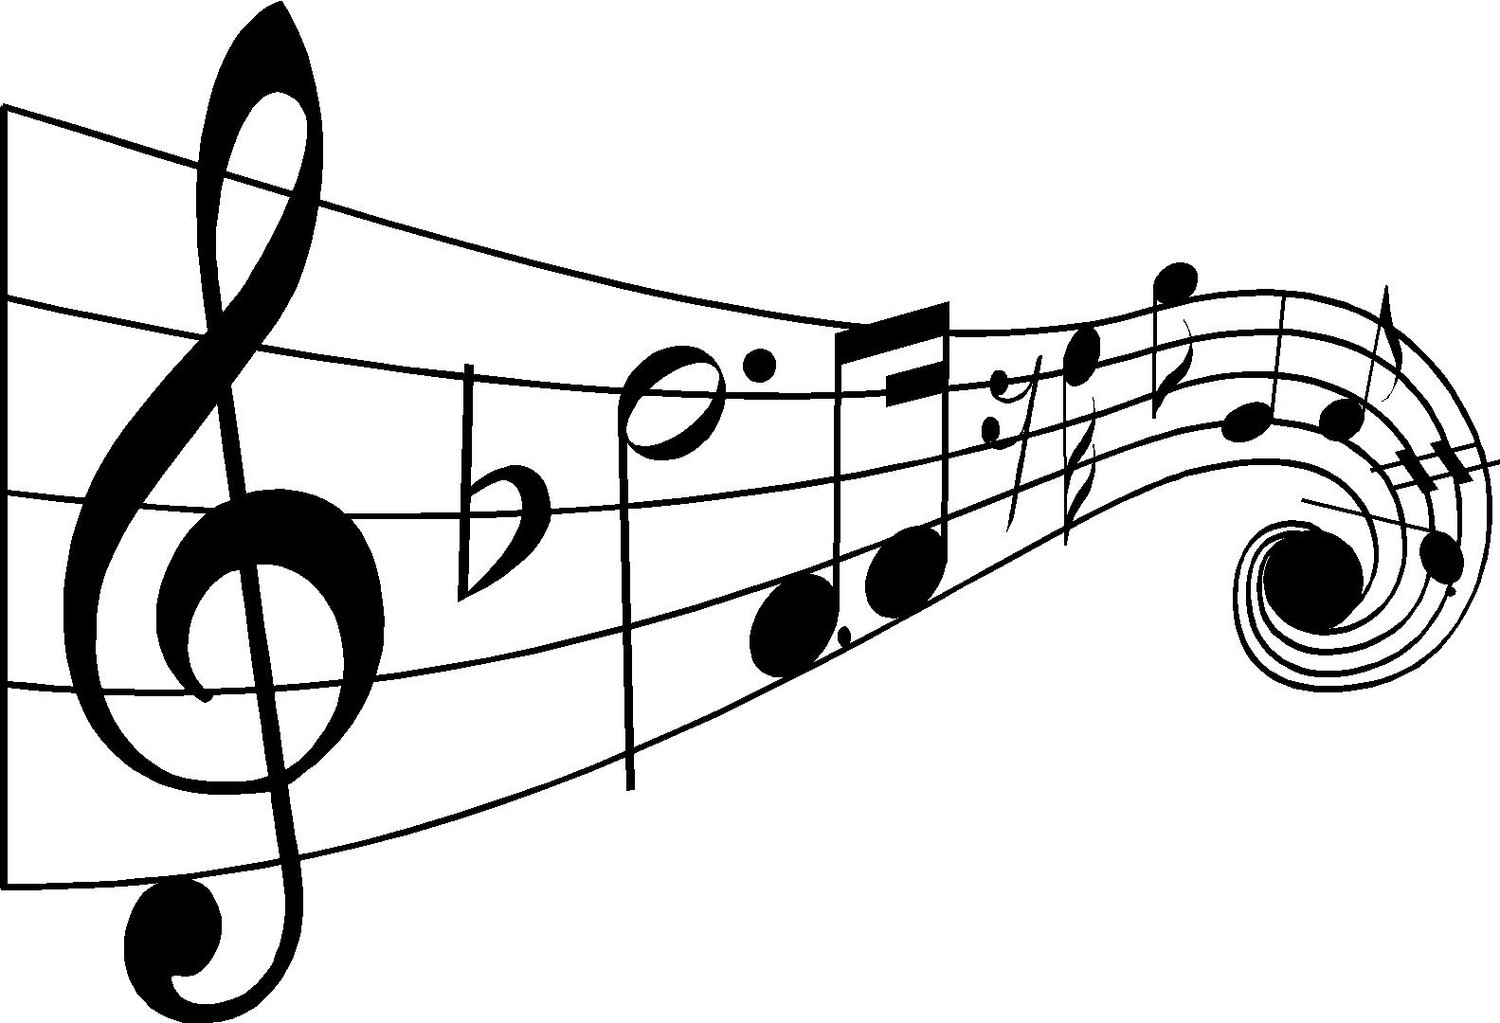 42 Printable Music Notes Free Cliparts That You Can Download To You